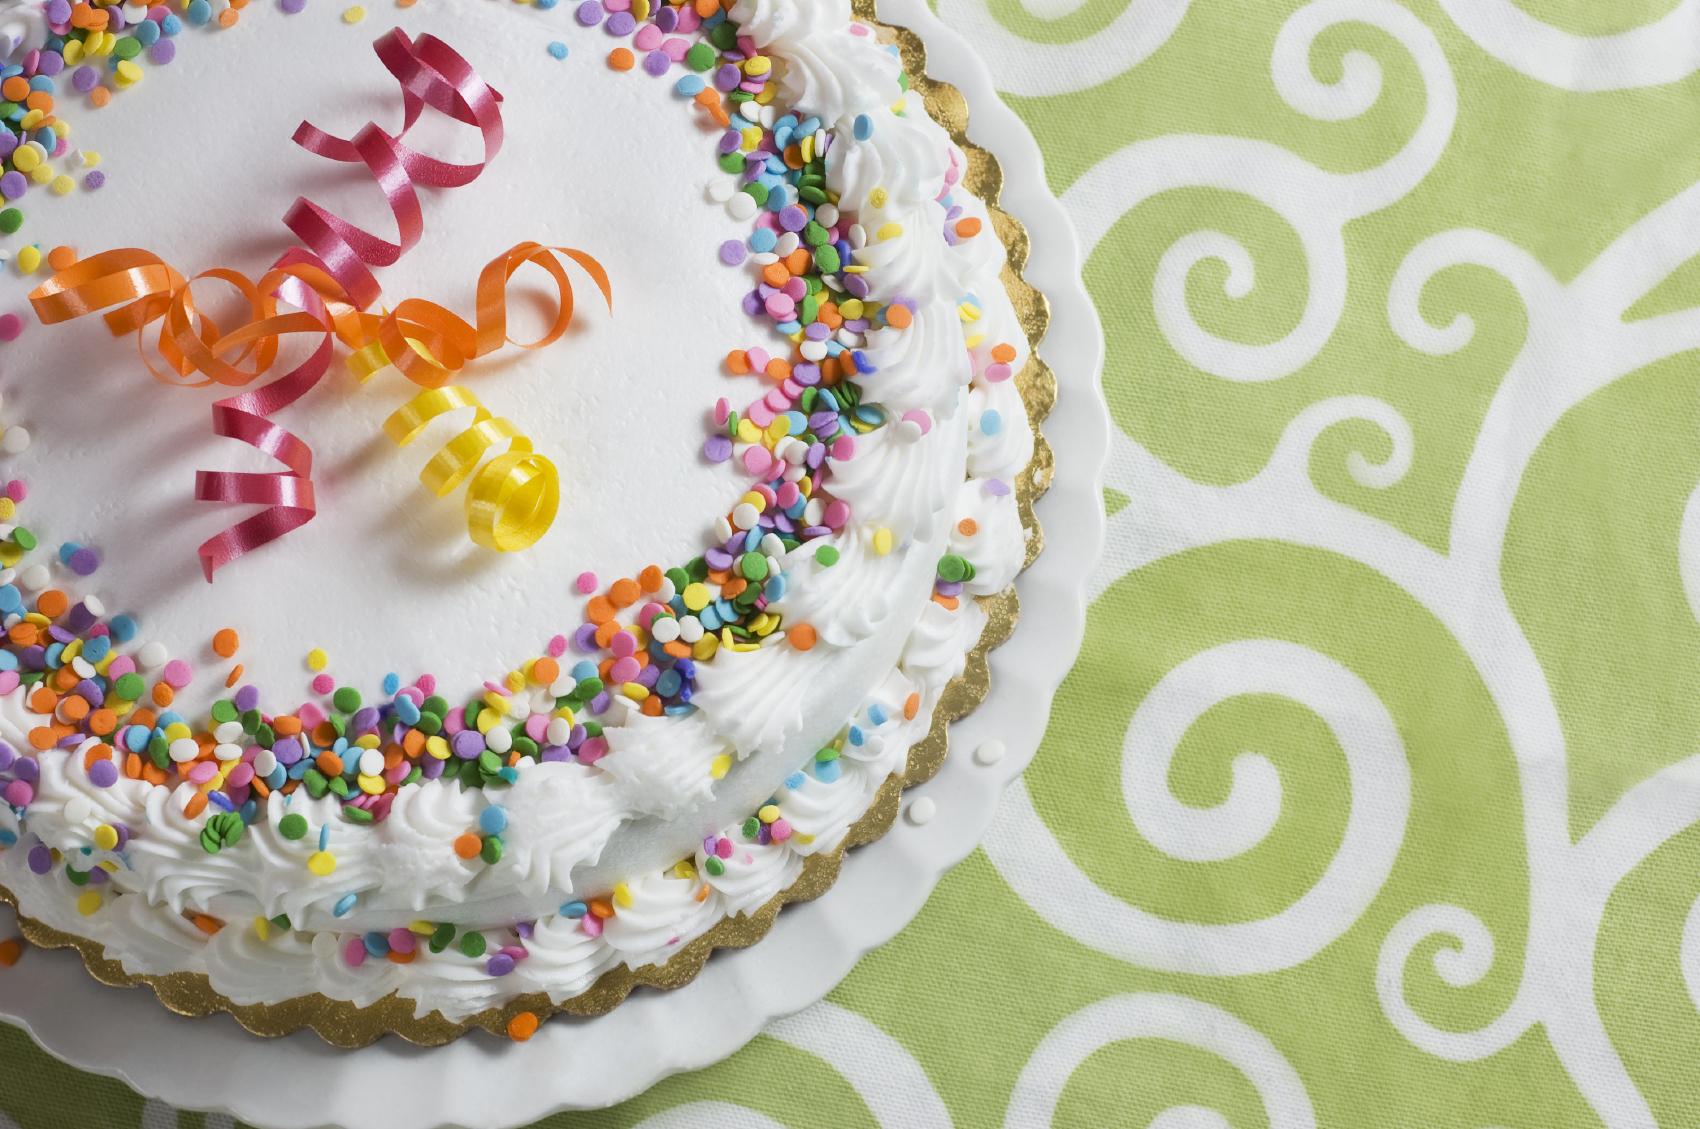 Free Cakes for Kids Hackney Free Cakes for Kids Hackney is a